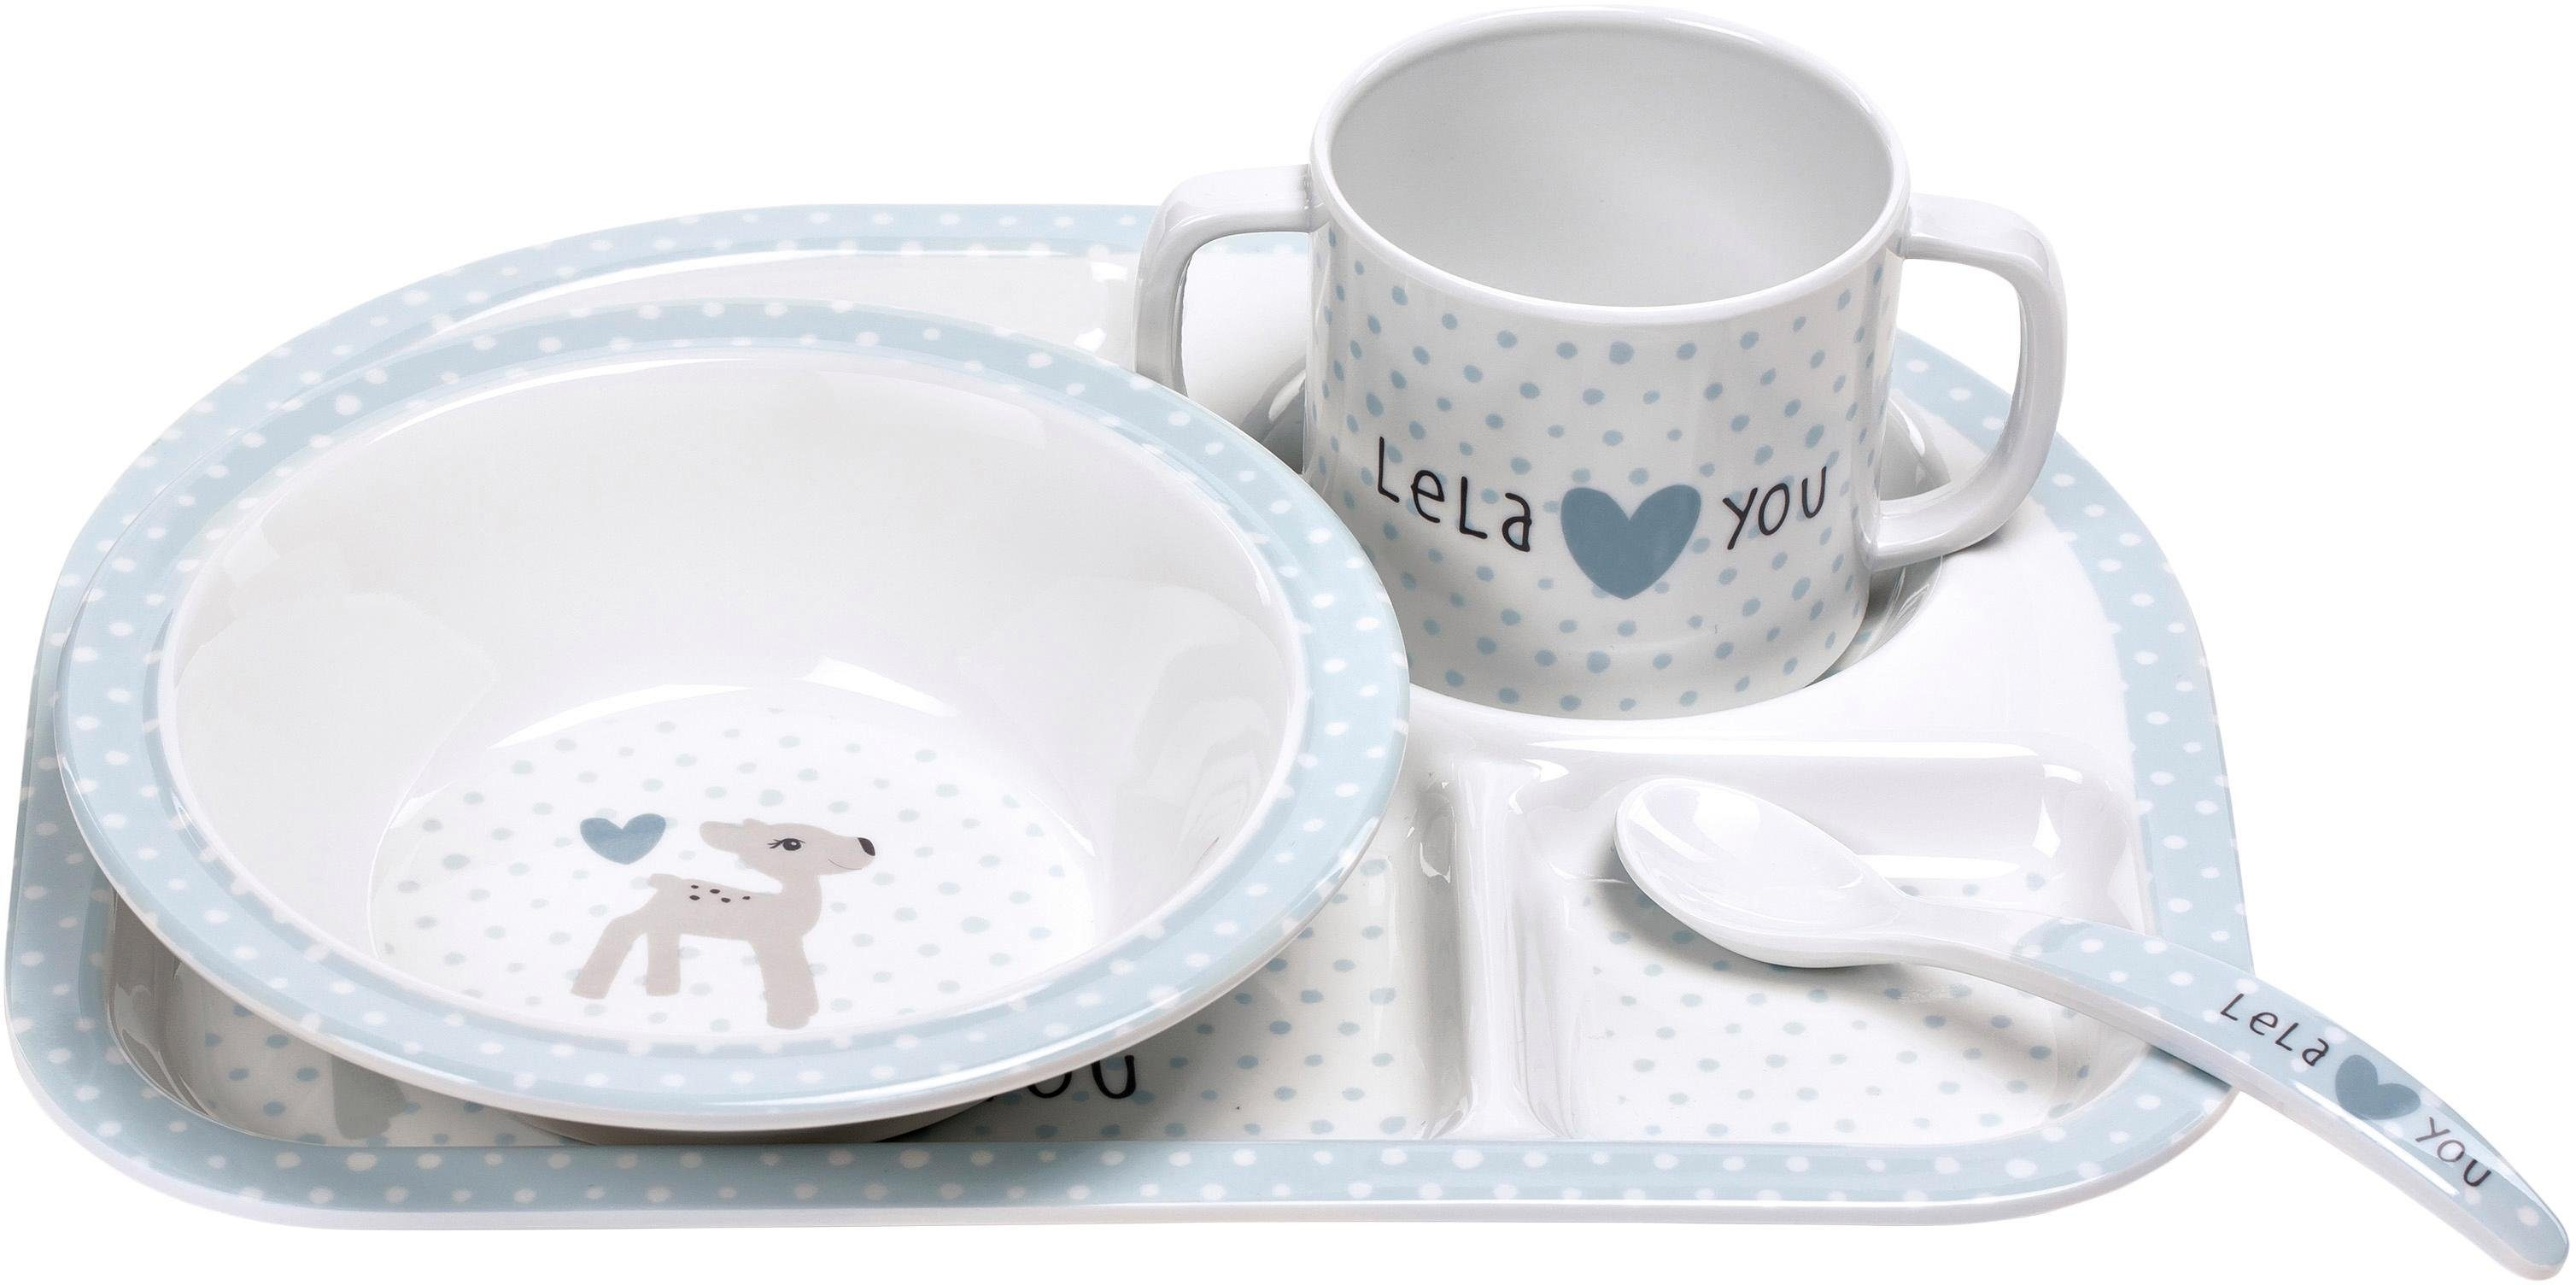 Lässig Kindergeschirr Set, 4-tlg., »Dish Set, Lela Light Blue«